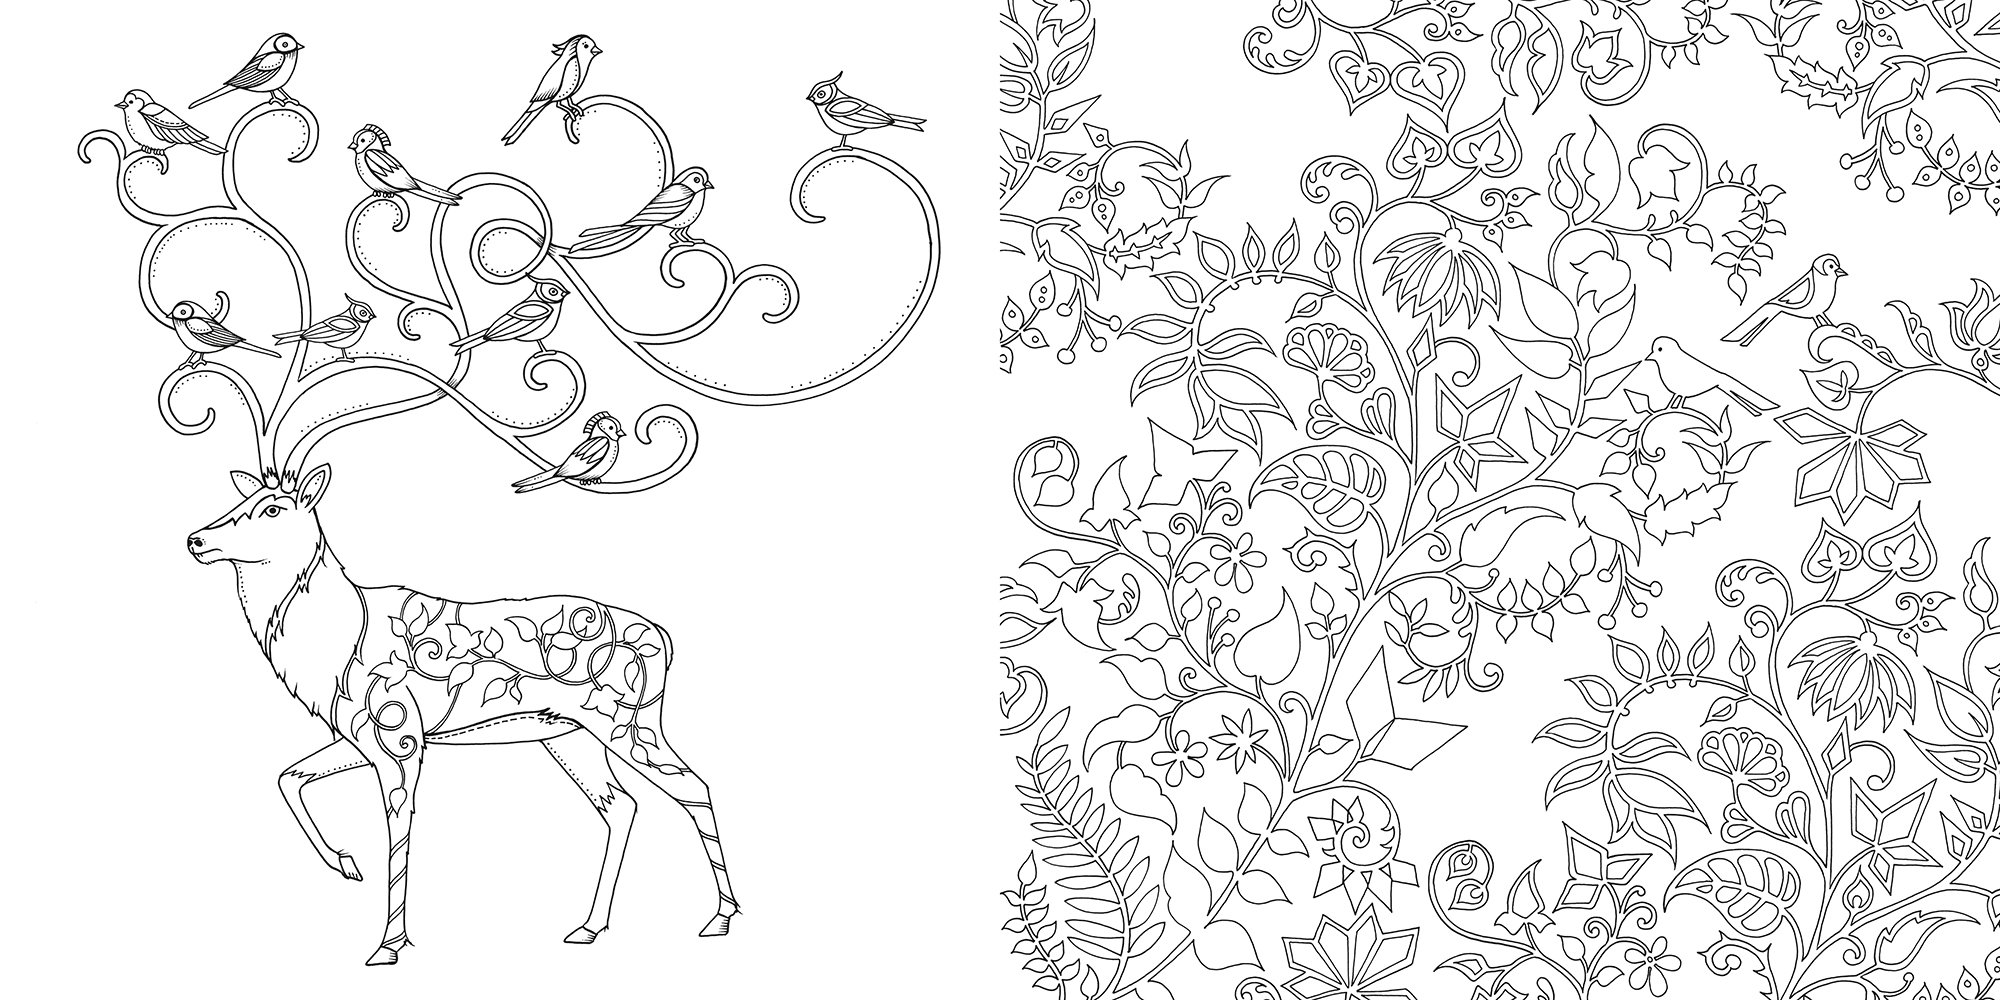 Colouring book - Buy Enchanted Forest An Inky Quest Coloring Book Book Online At Low Prices In India Enchanted Forest An Inky Quest Coloring Book Reviews Ratings